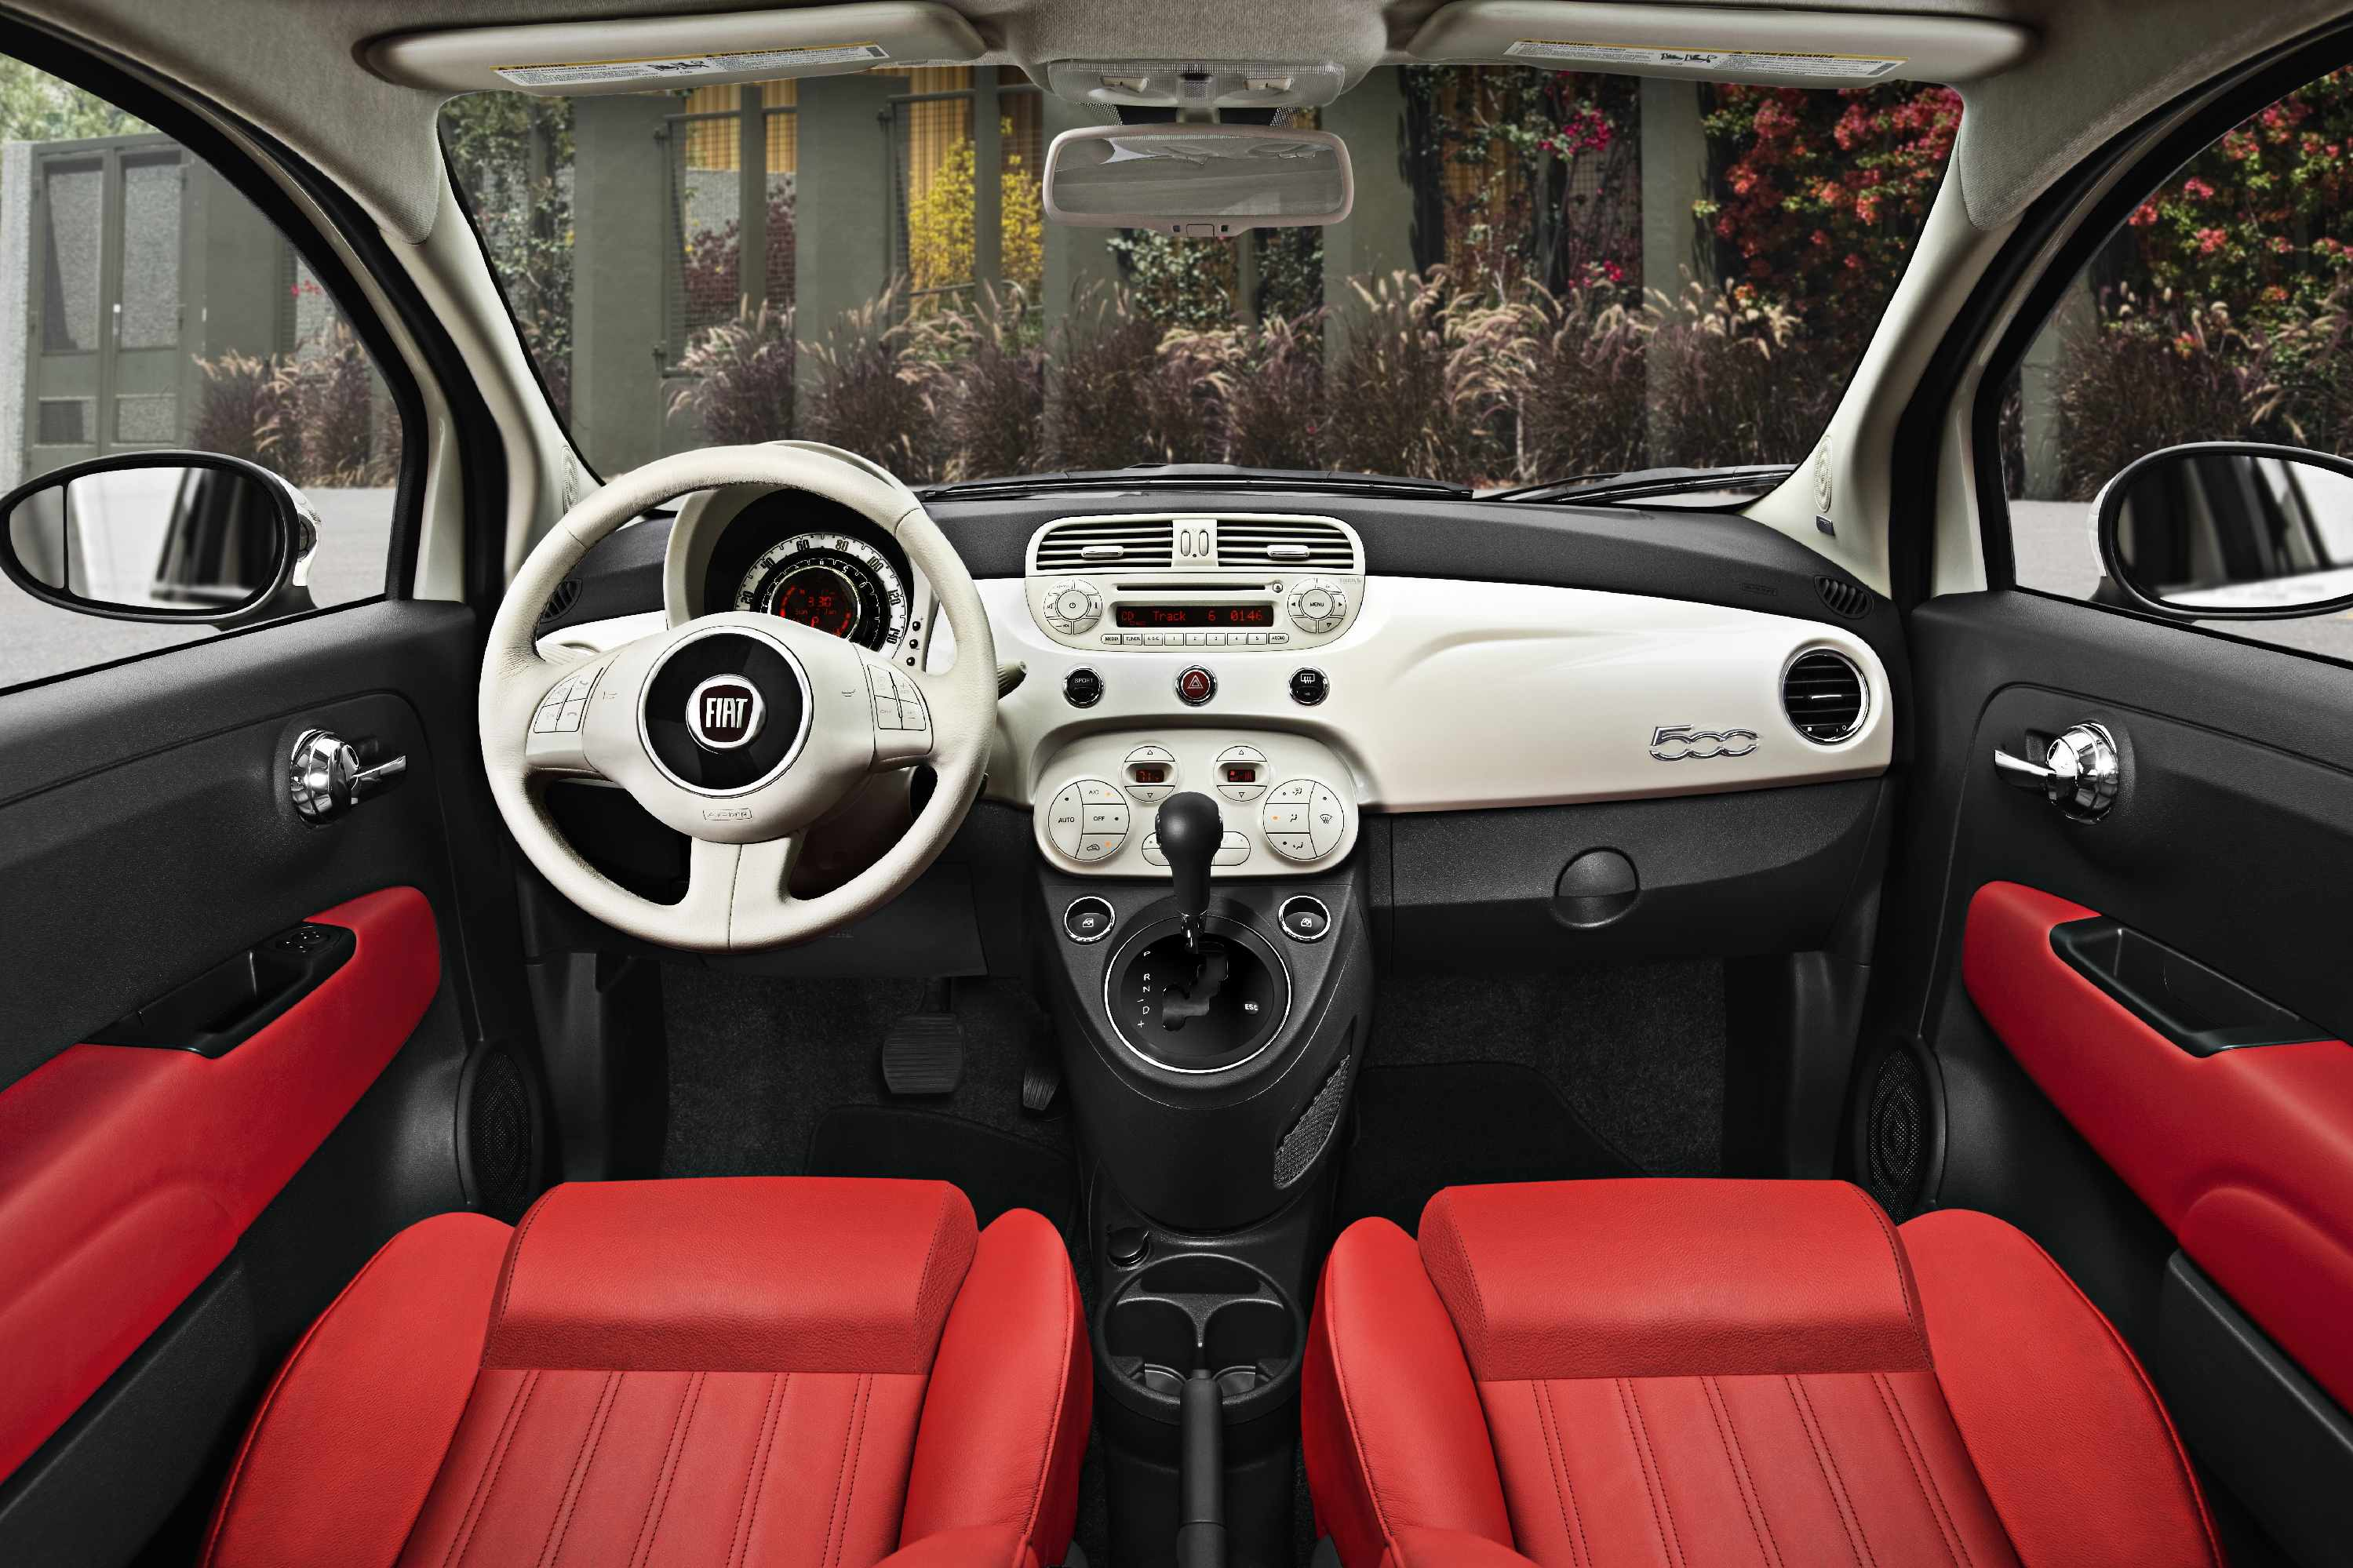 lounge gas new leo pinterest fiat pin my blue baby fiats mileage